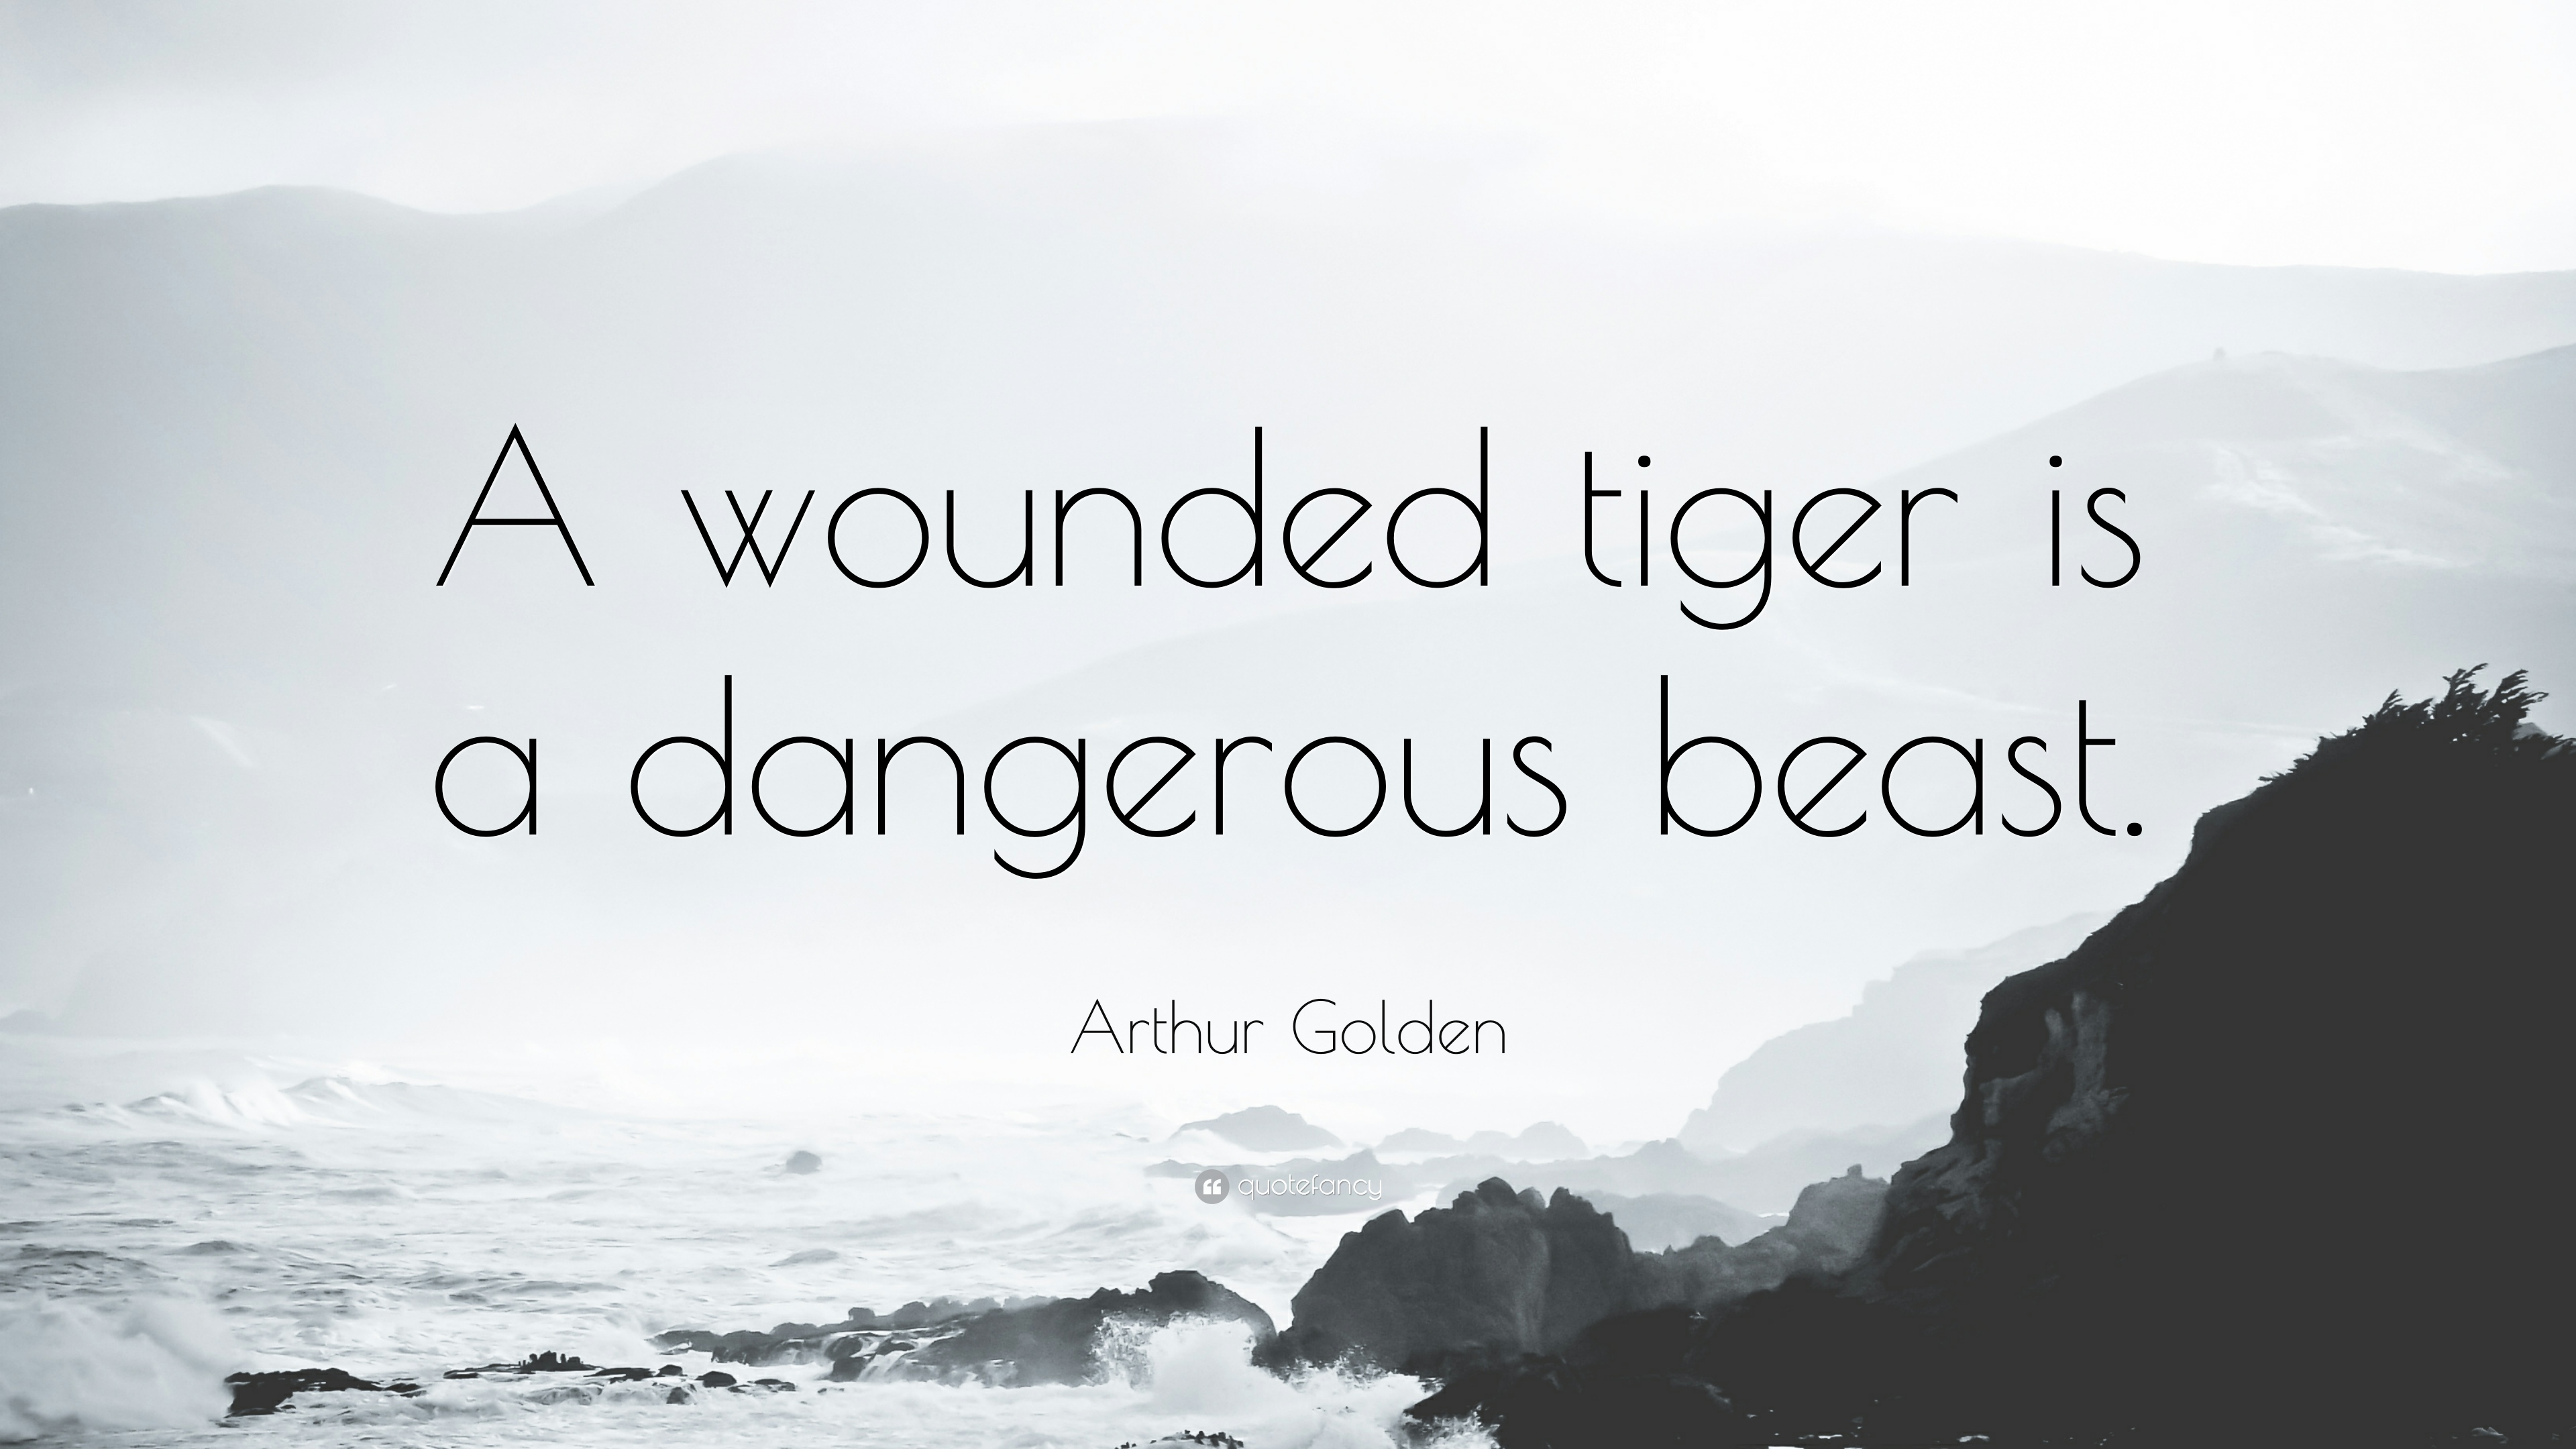 Wounded tiger photo